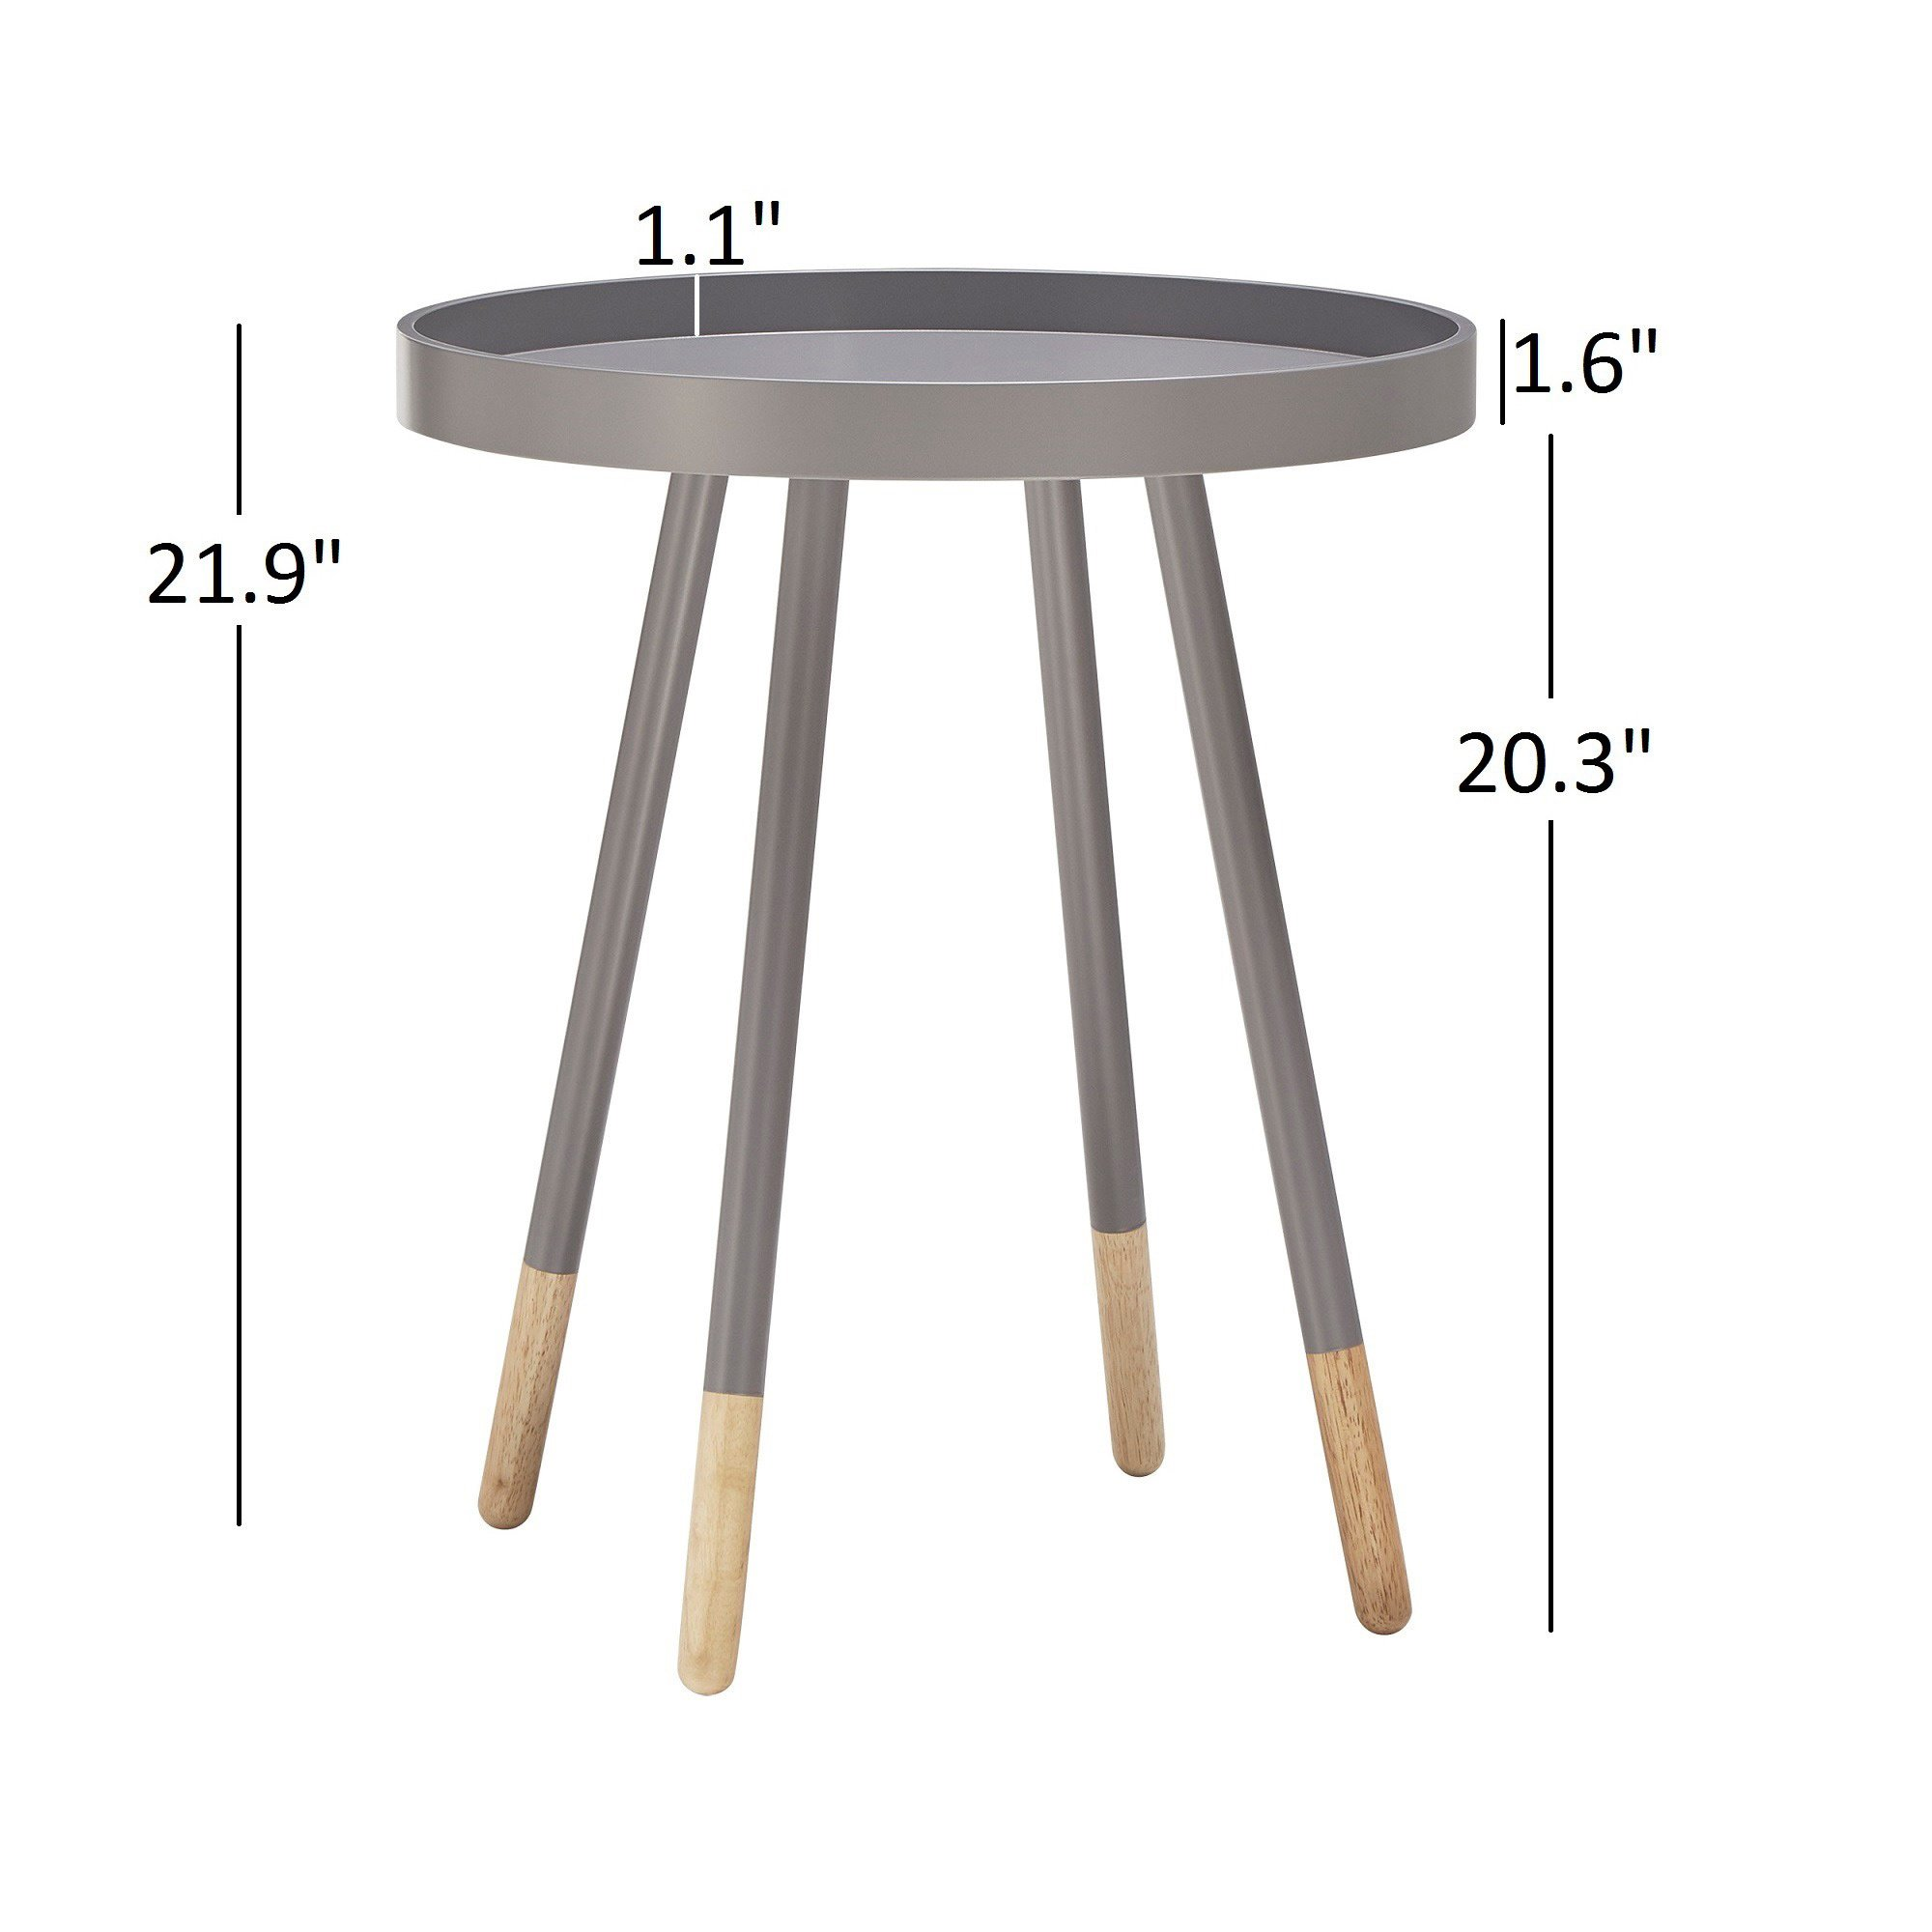 marcella paint dipped round spindle tray top side table inspire modern wood accent free shipping today office wall cabinets pair lamps three piece agate marble look dining coffee